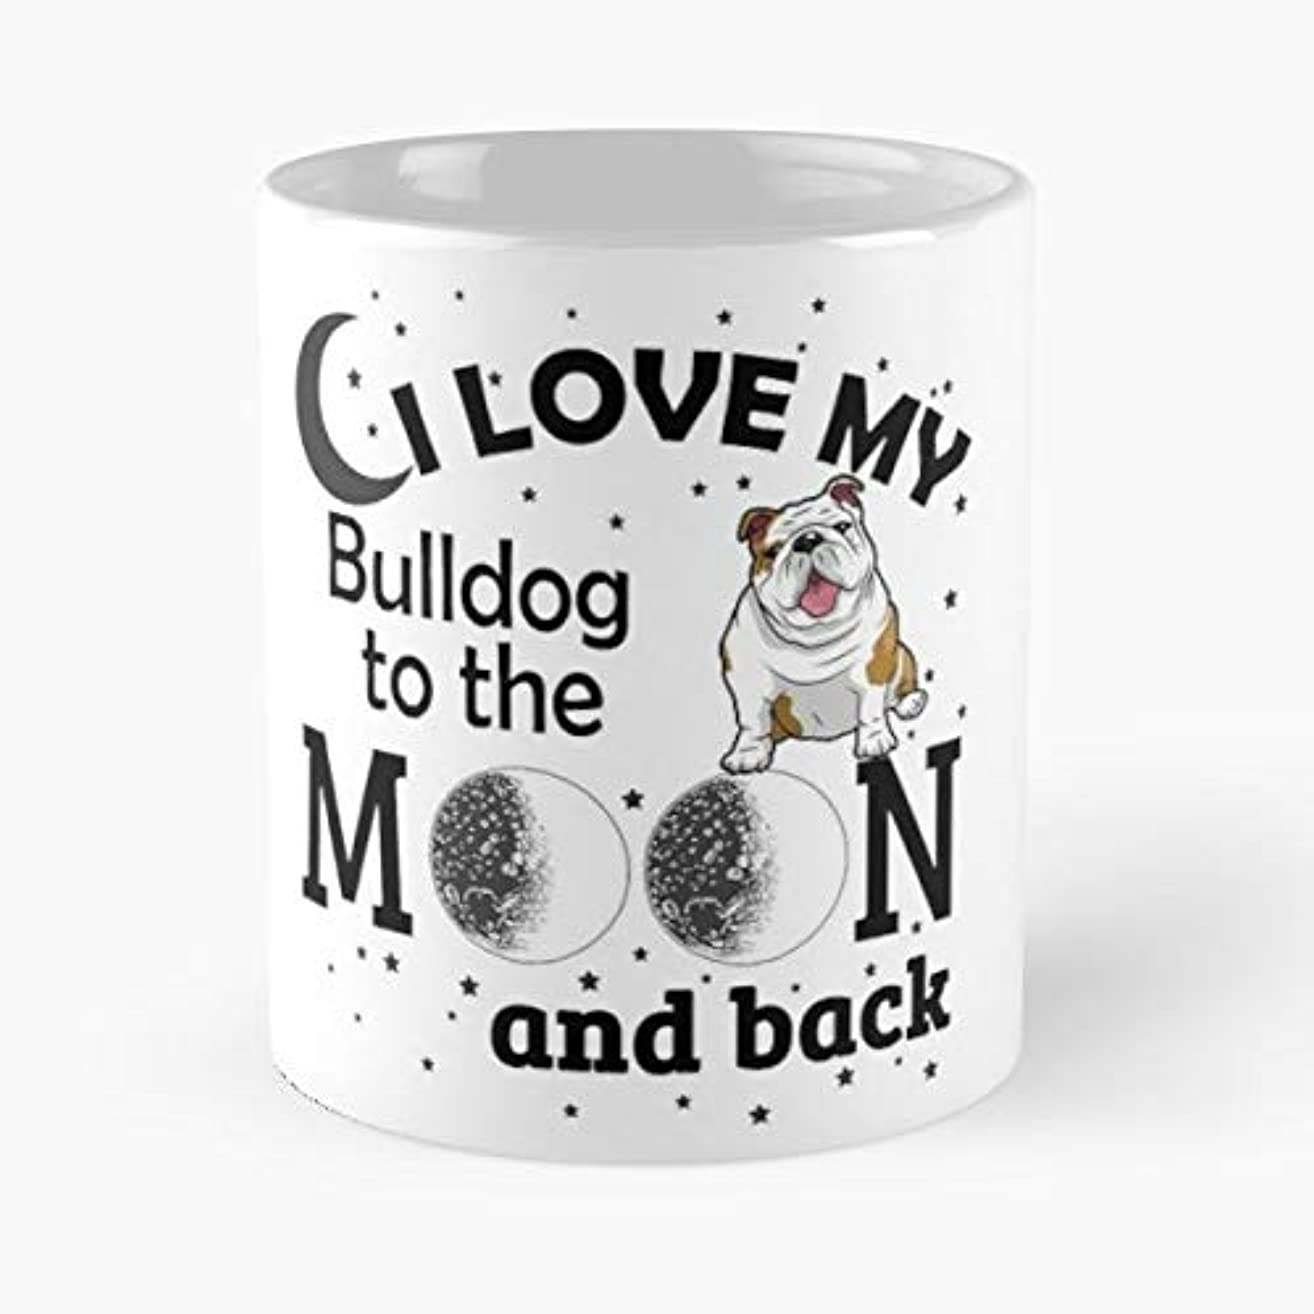 I Love My Bulldog To The Moon And Back Dog Breed Boxer - Funny Gifts For Men Women Gift Coffee Mug Tea Cup White 11 Oz The Best Gift Holidays.